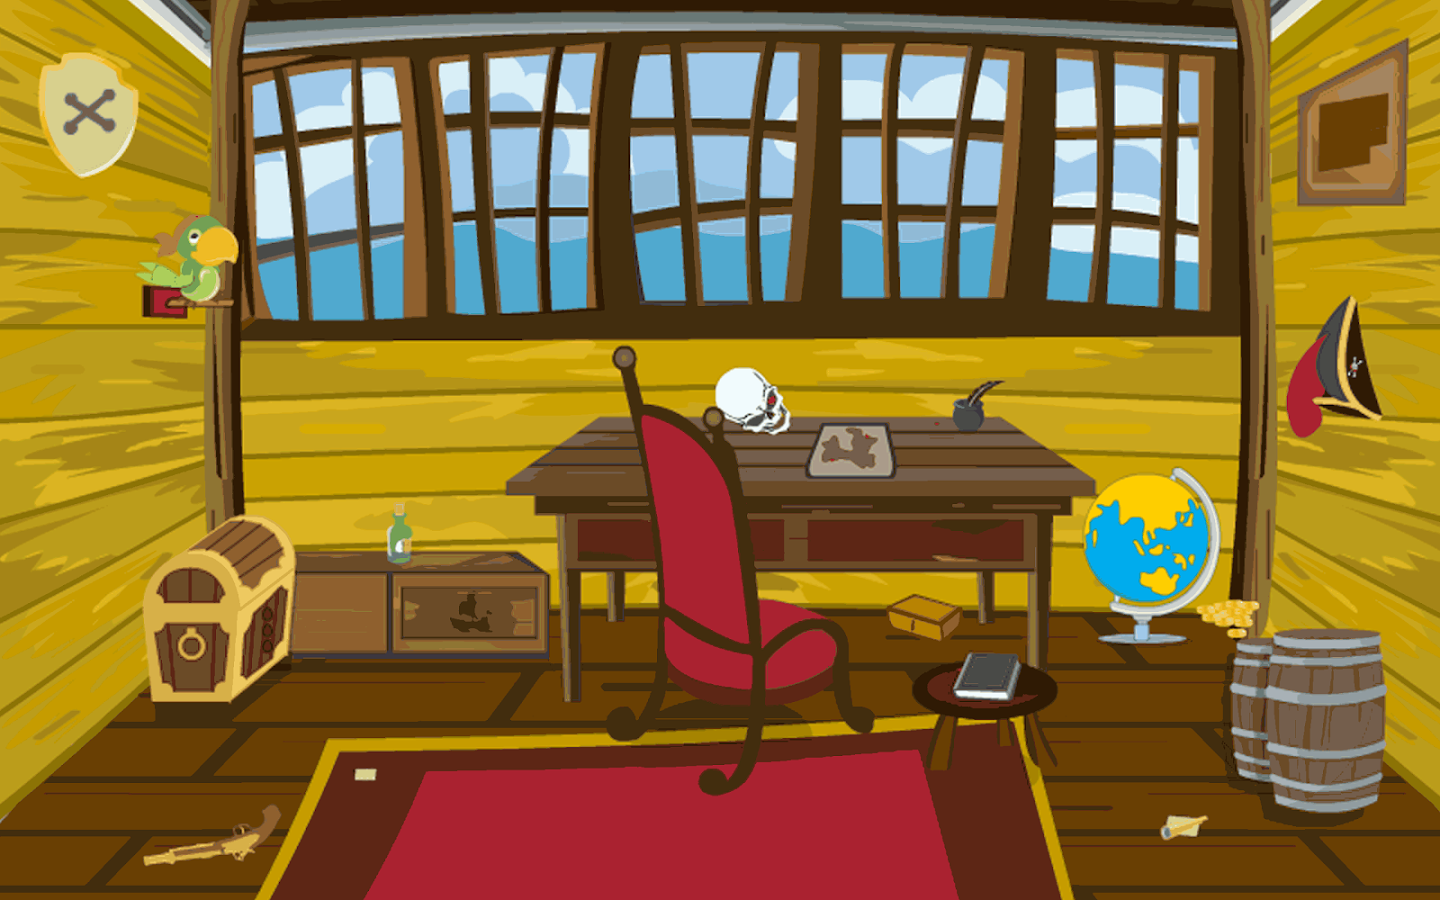 Escape games puzzle pirate 1 android apps on google play for Escape puzzle